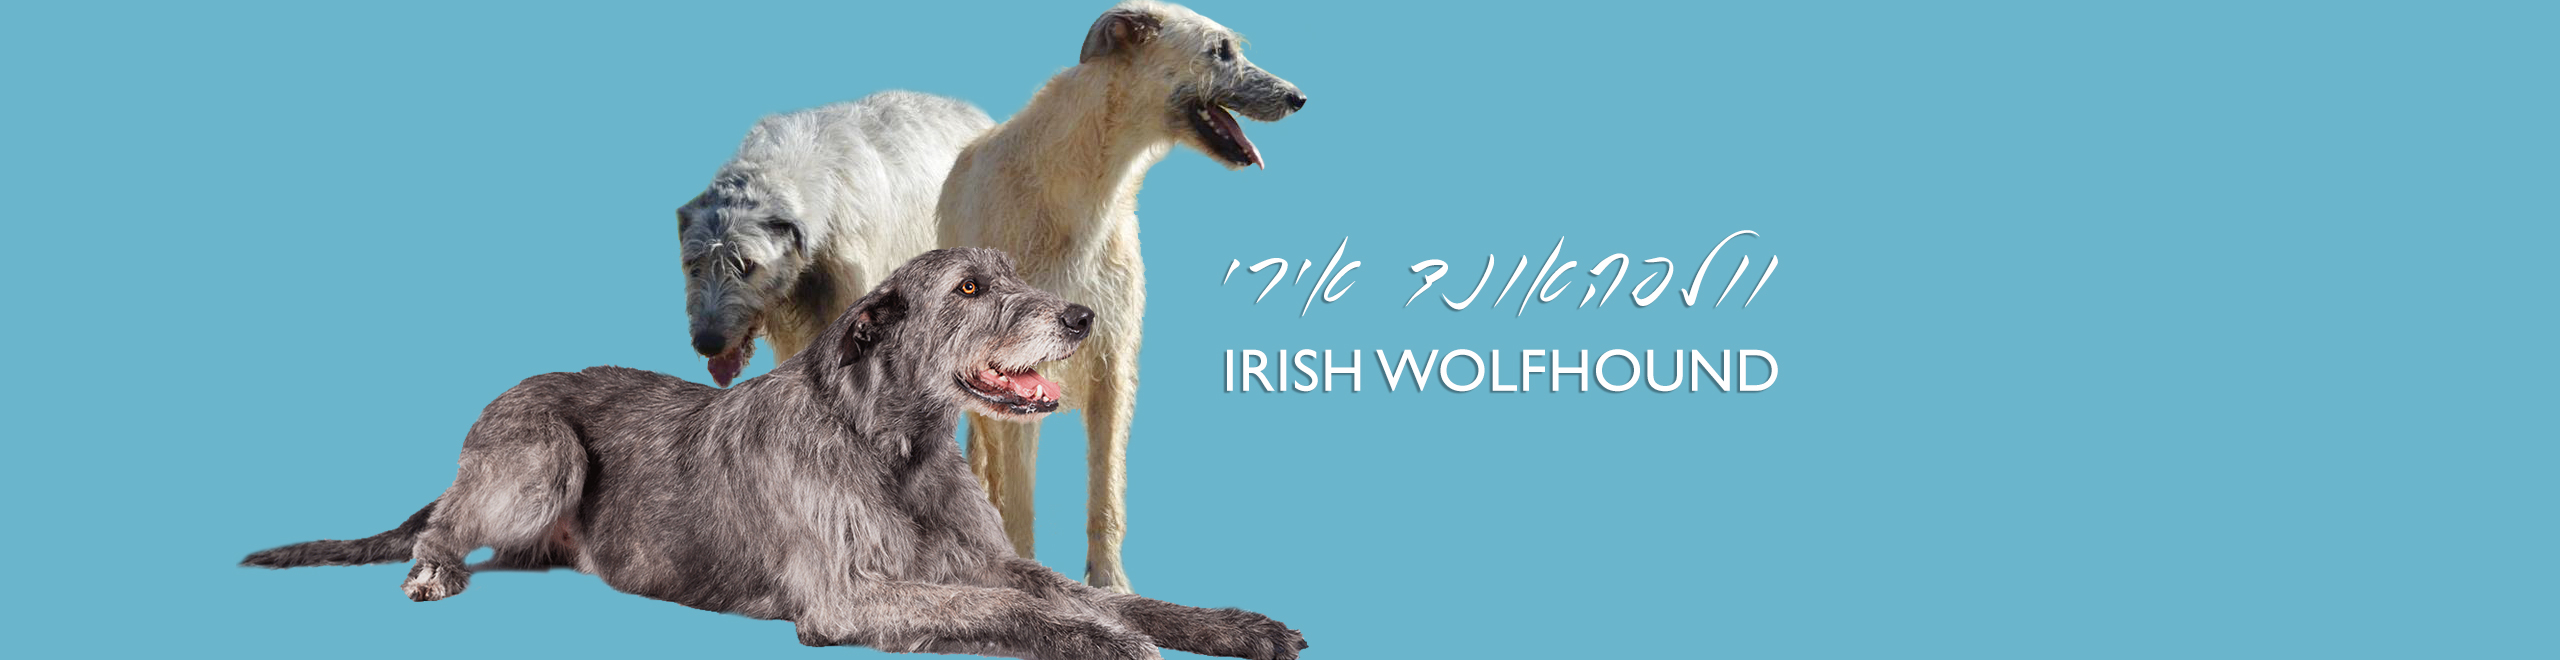 Irish Wolfhound וולפהאונד אירי